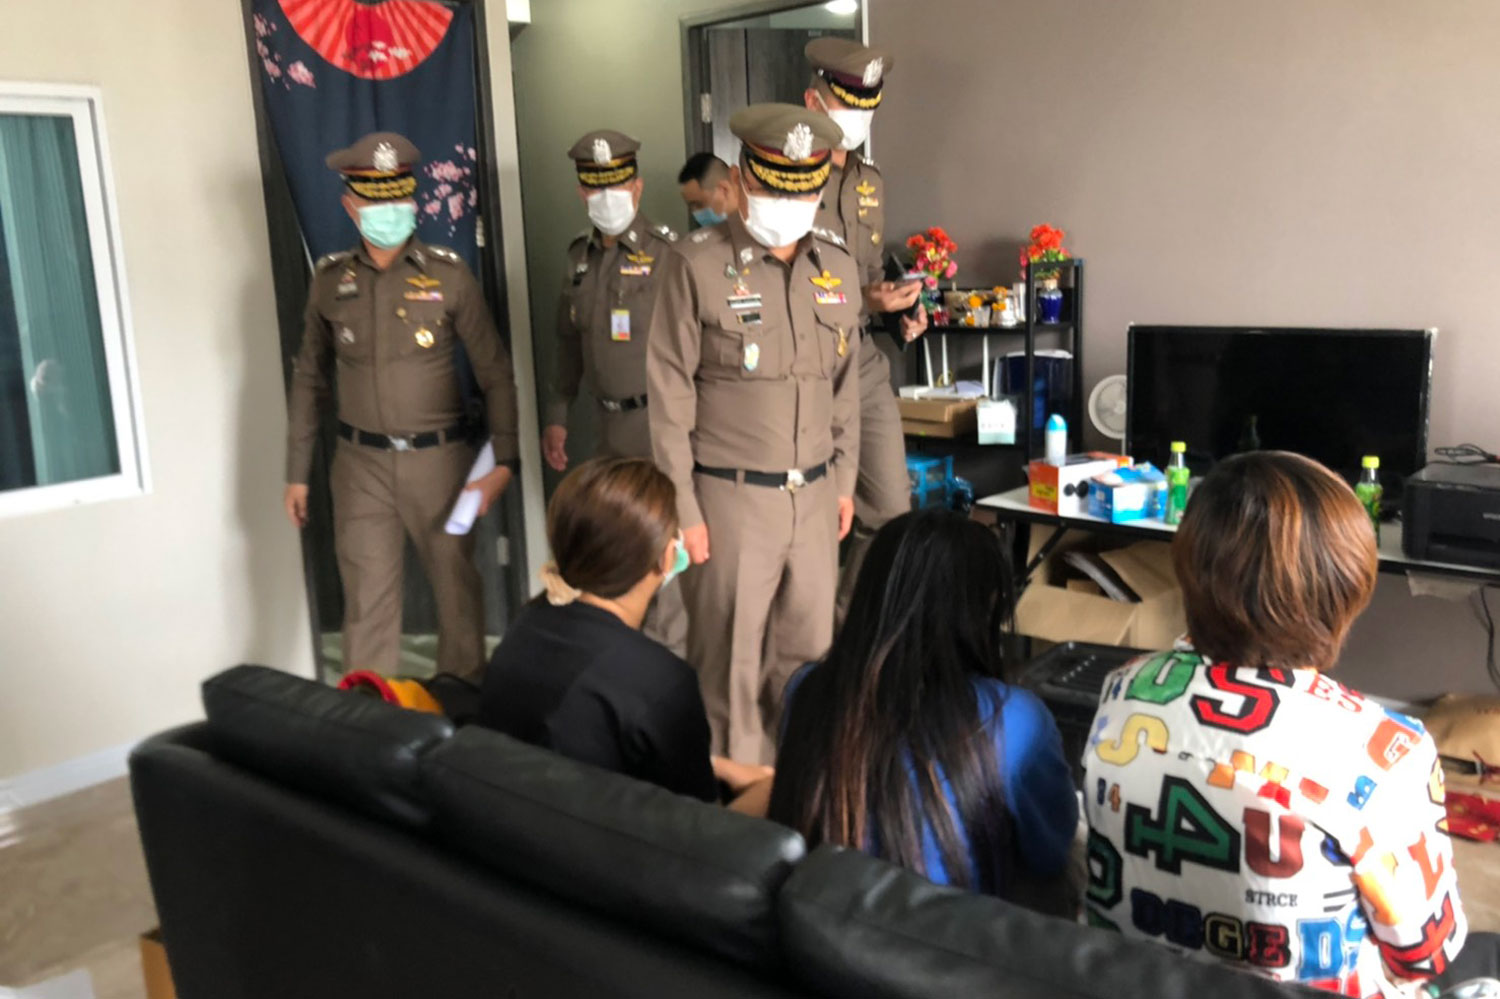 Police confront three of the people caught during the raid on three rooms at a condominium in Bangkok's Bangkok Noi district. They worked for a gambling website with a turnover estimated at more than 100 million baht a month, according to police. (Photo: Wassayos Ngamkham)